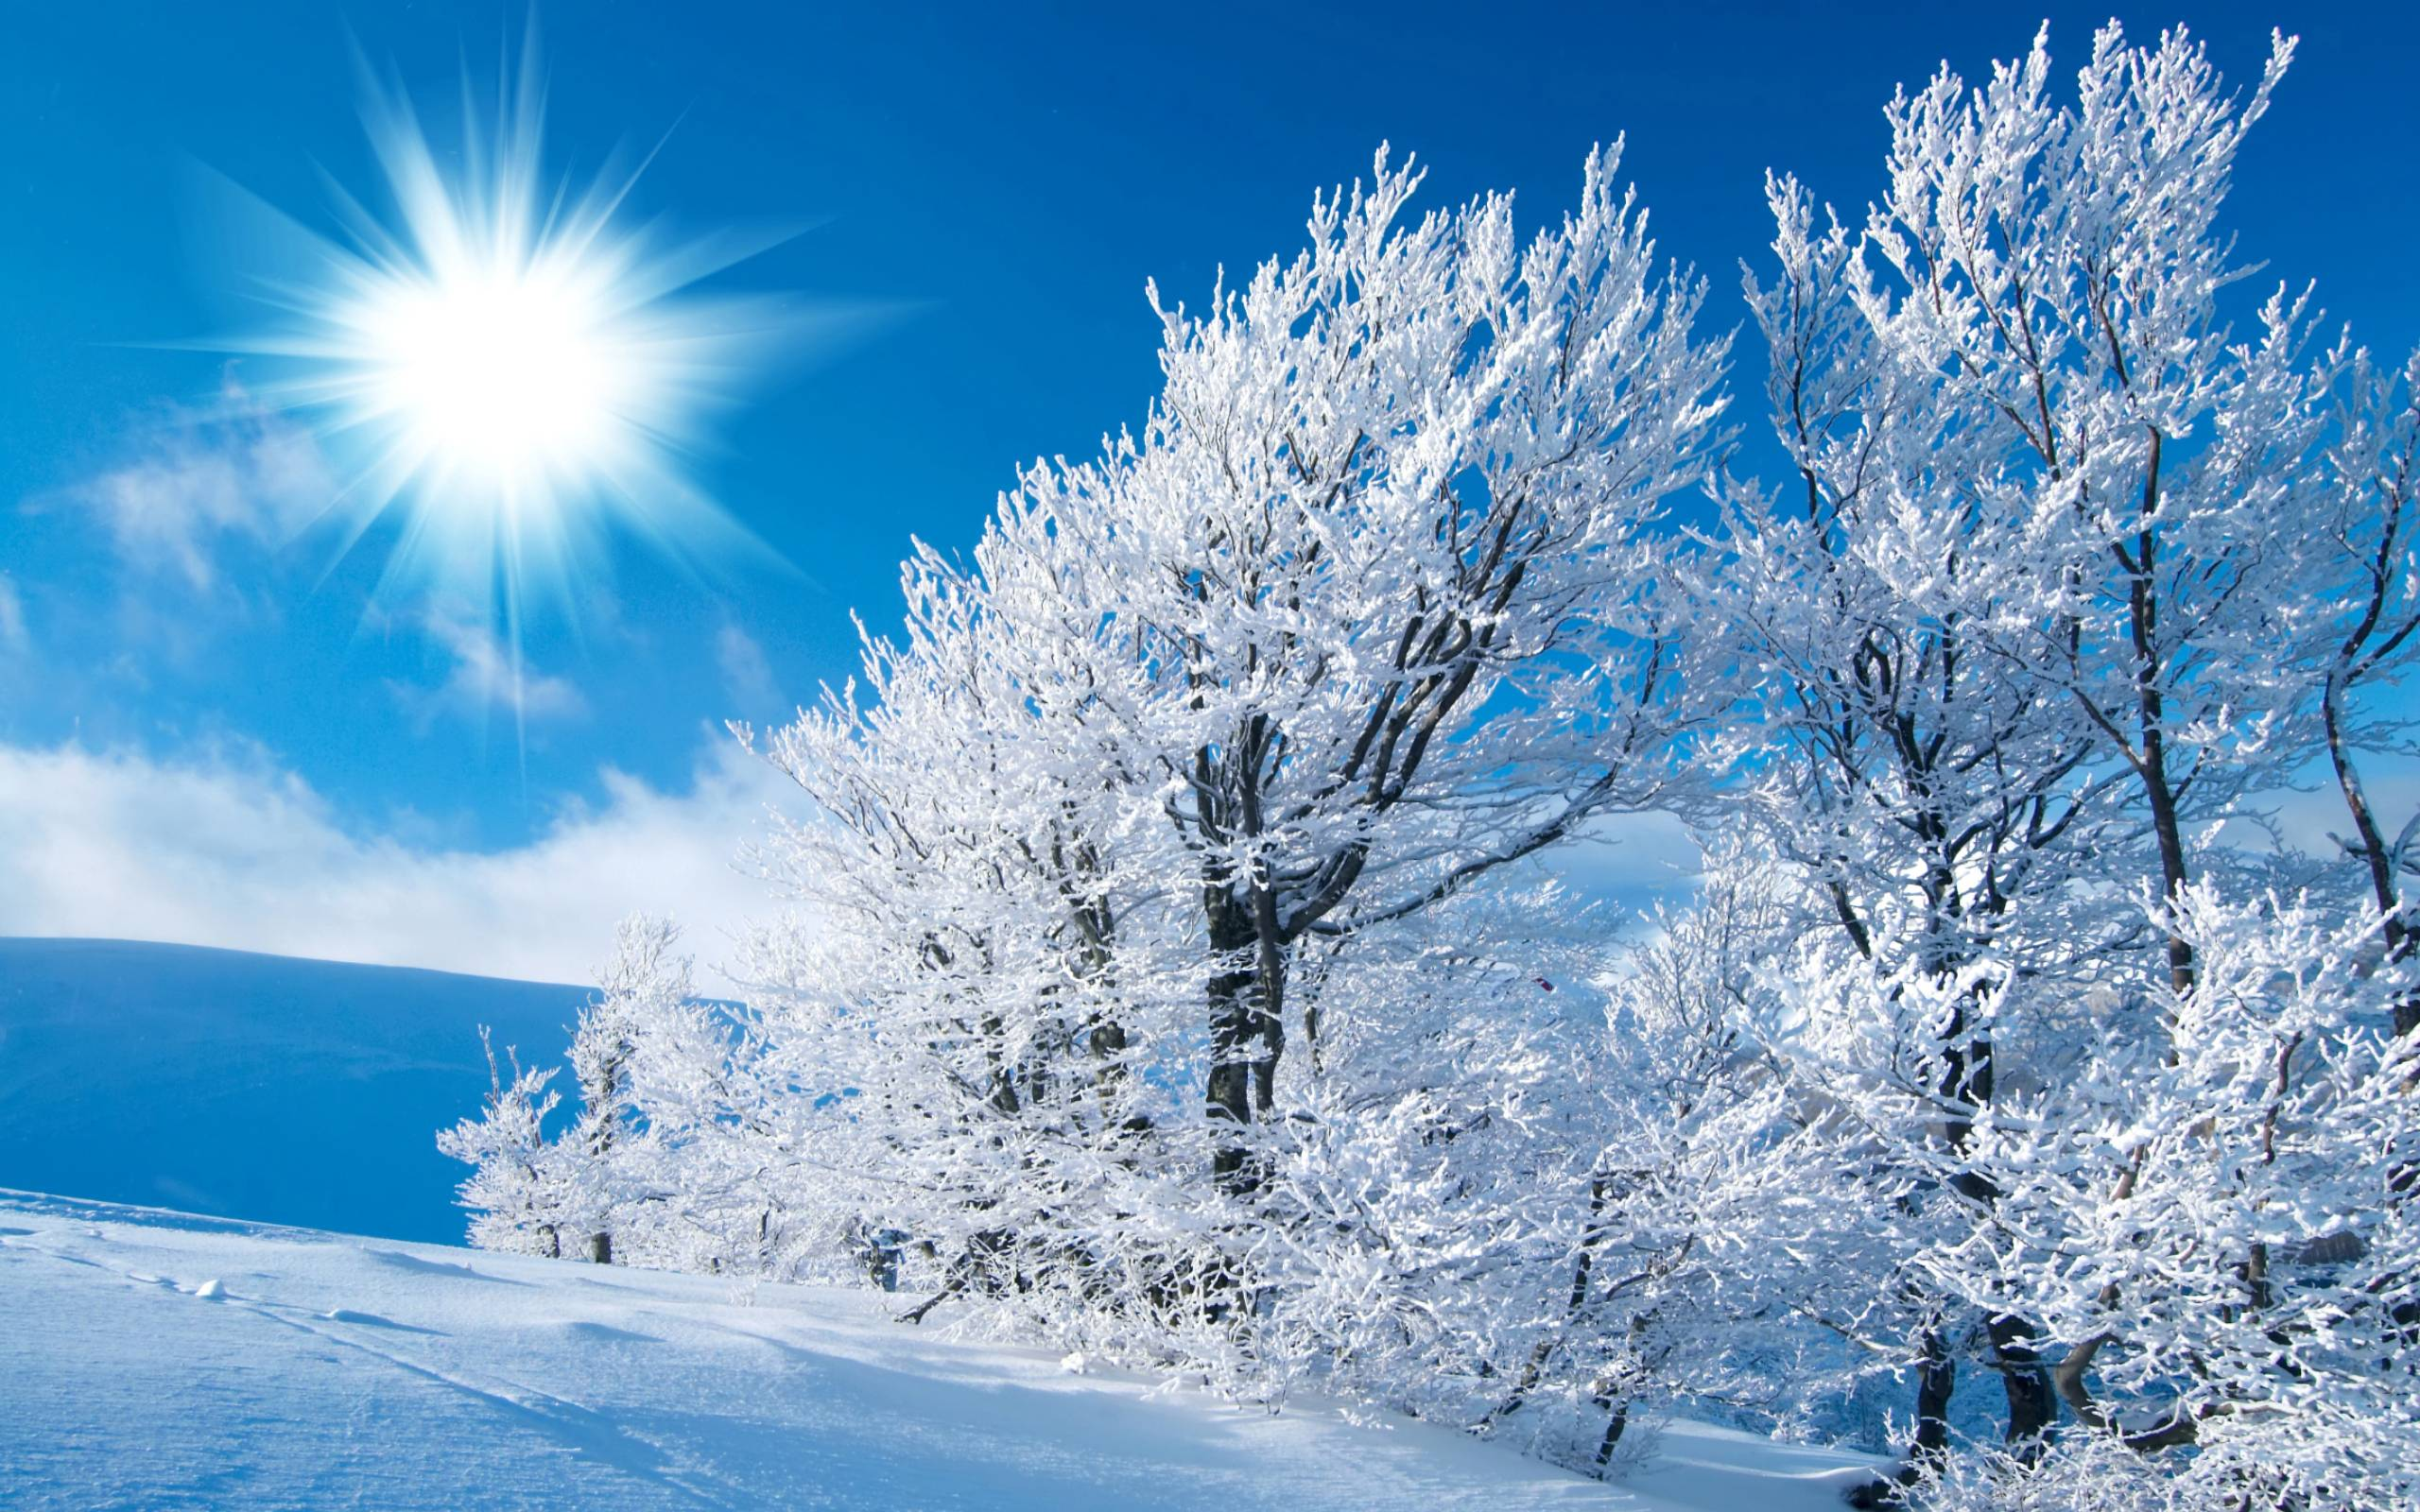 winter scene desktop wallpapers 2015